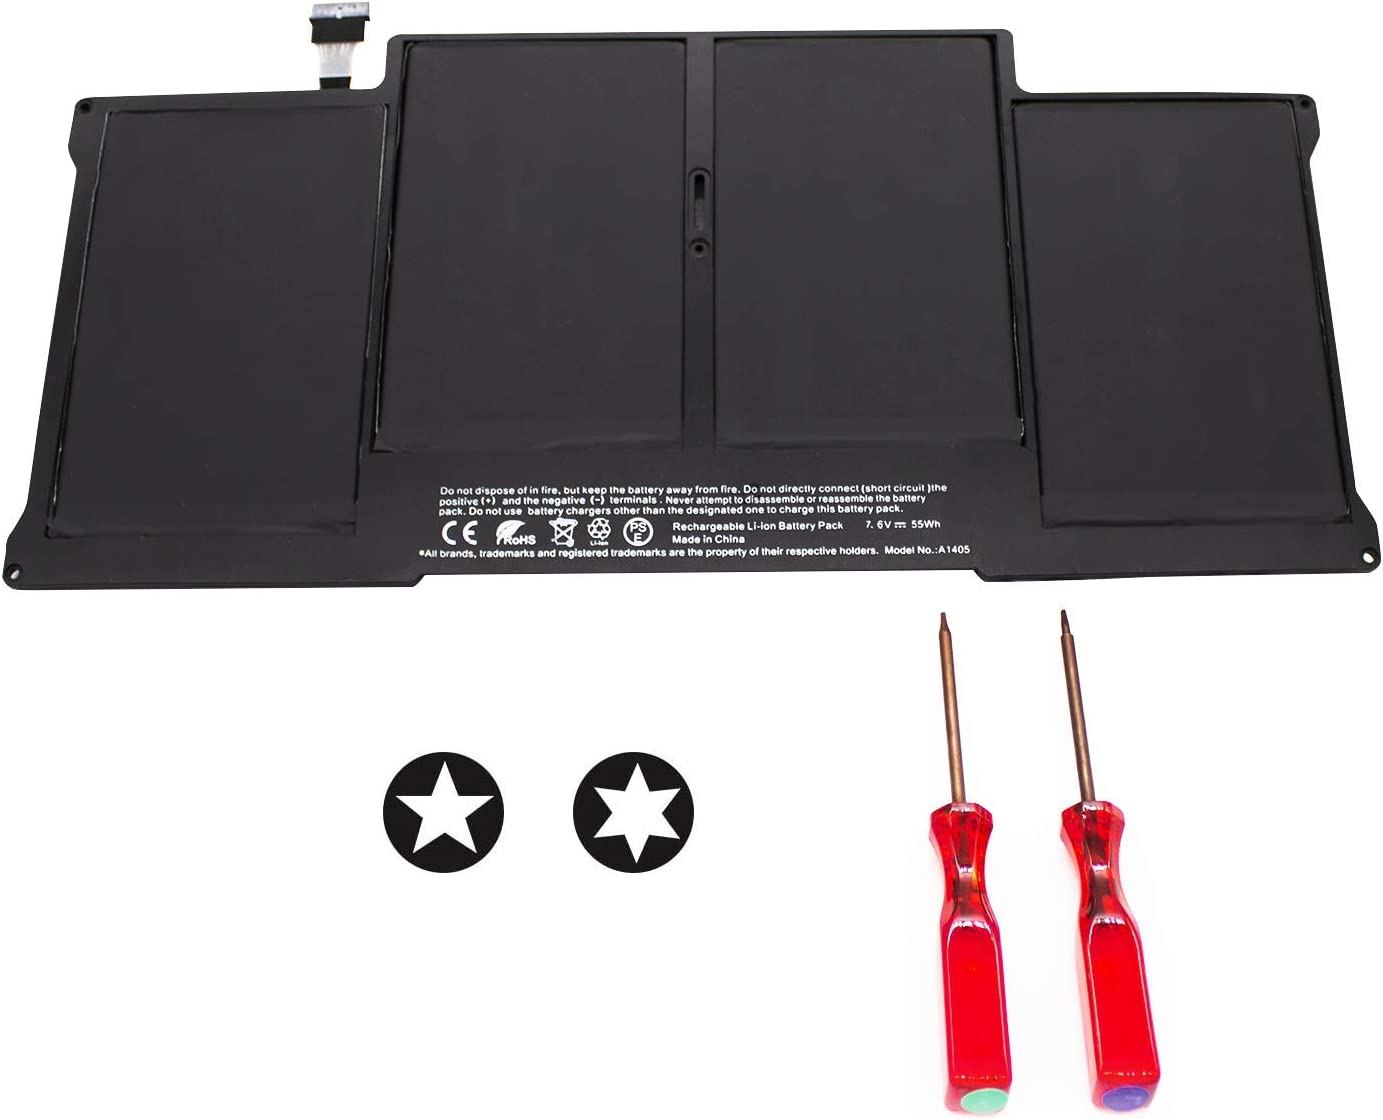 "POWERWOO Laptop Battery for MacBook Air 13"" A1466 (Mid 2012, Mid 2013, Early 2014, Early 2015,2017) A1369 (Late 2010, Mid 2011 Version),fits A1496 A1405 A1377- Higher Capacity - [7200mAh/55Wh/7.6V]"